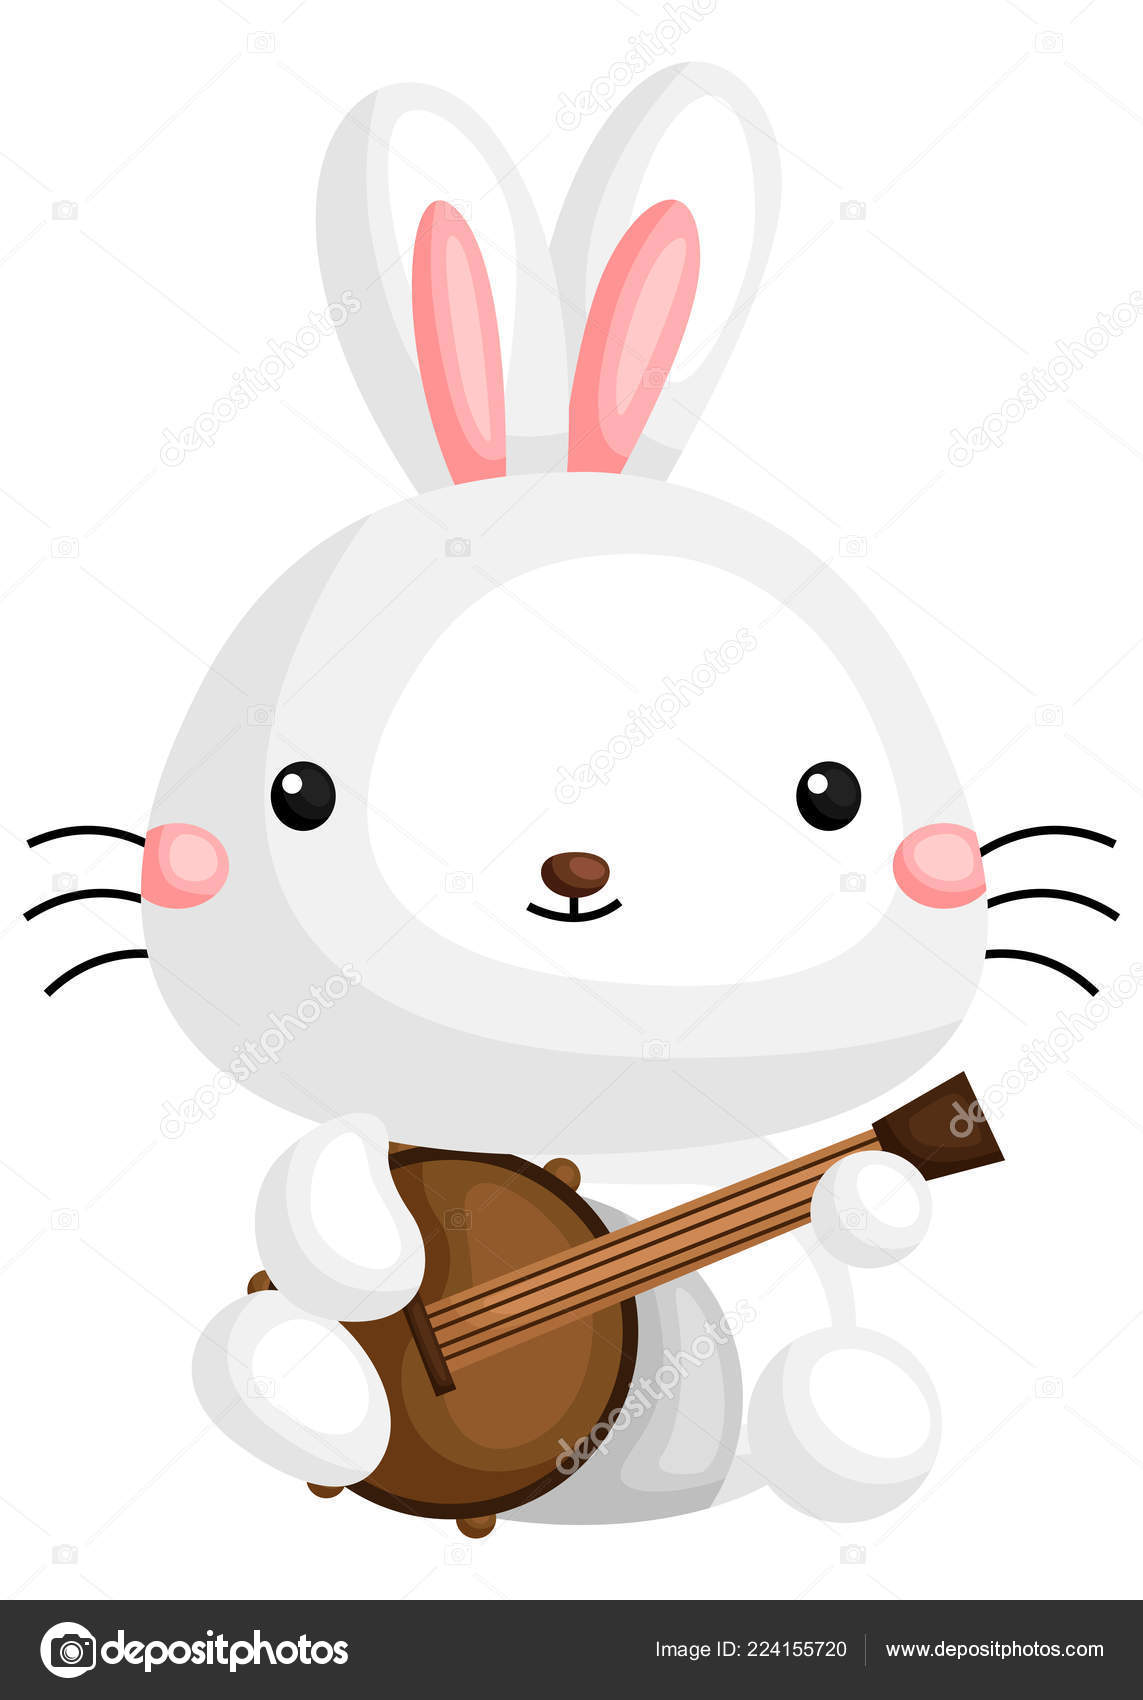 Vector Cute Rabbit Holding Guitar Stock Vector C Comodo777 224155720